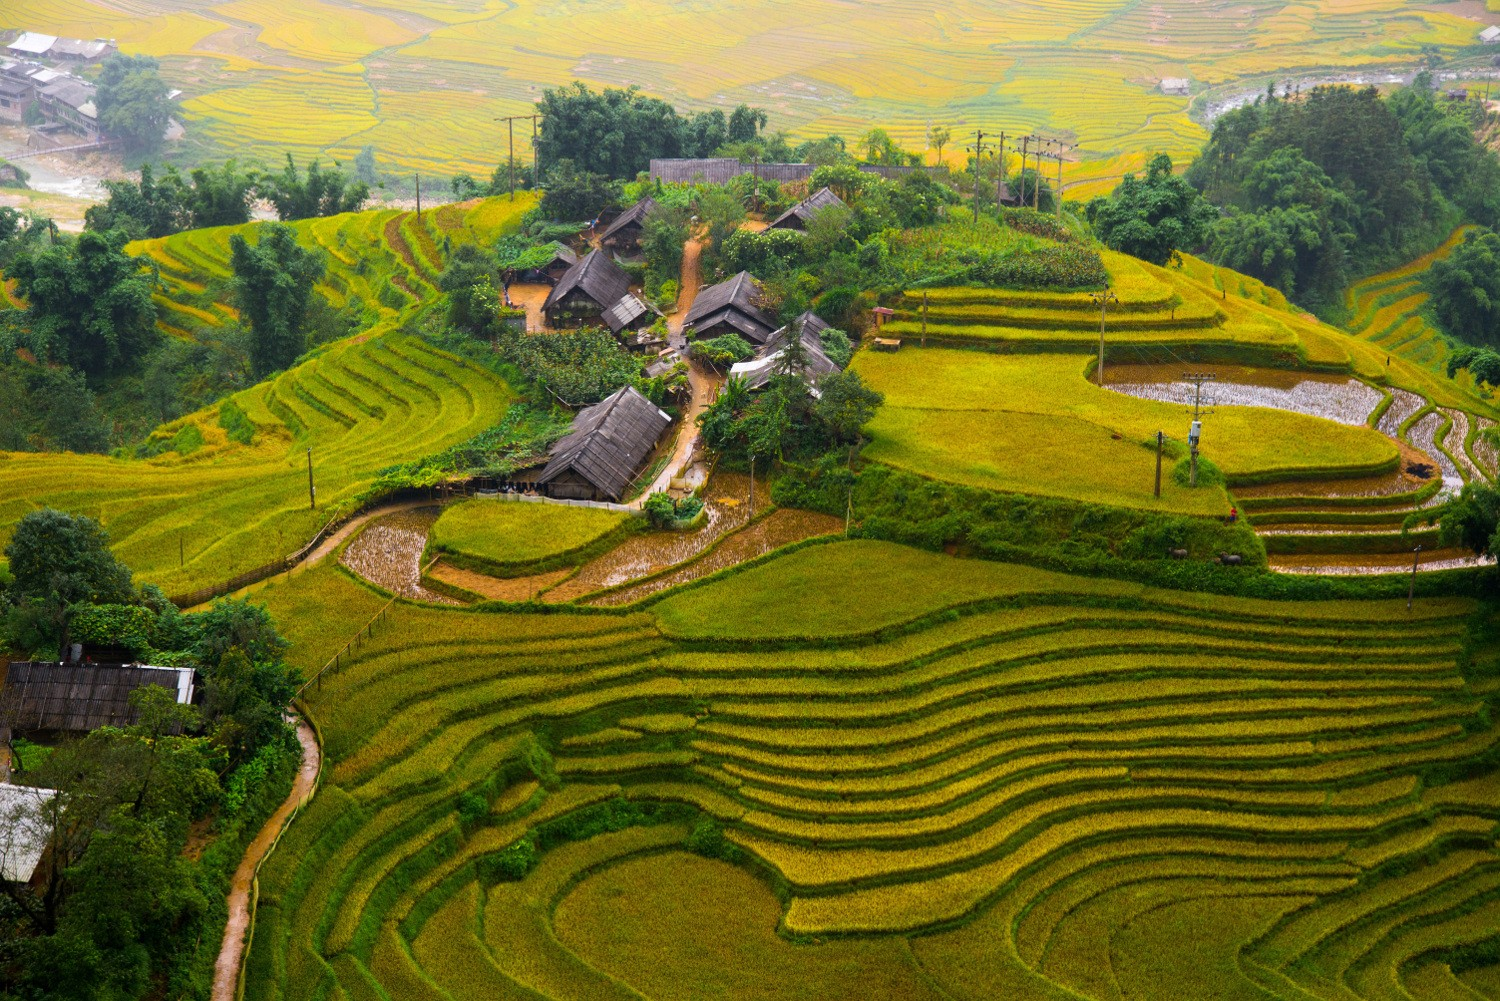 Sapa is famous tourist attraction for beautiful rice terraces, imposing mountain landscape and unique tribal customs